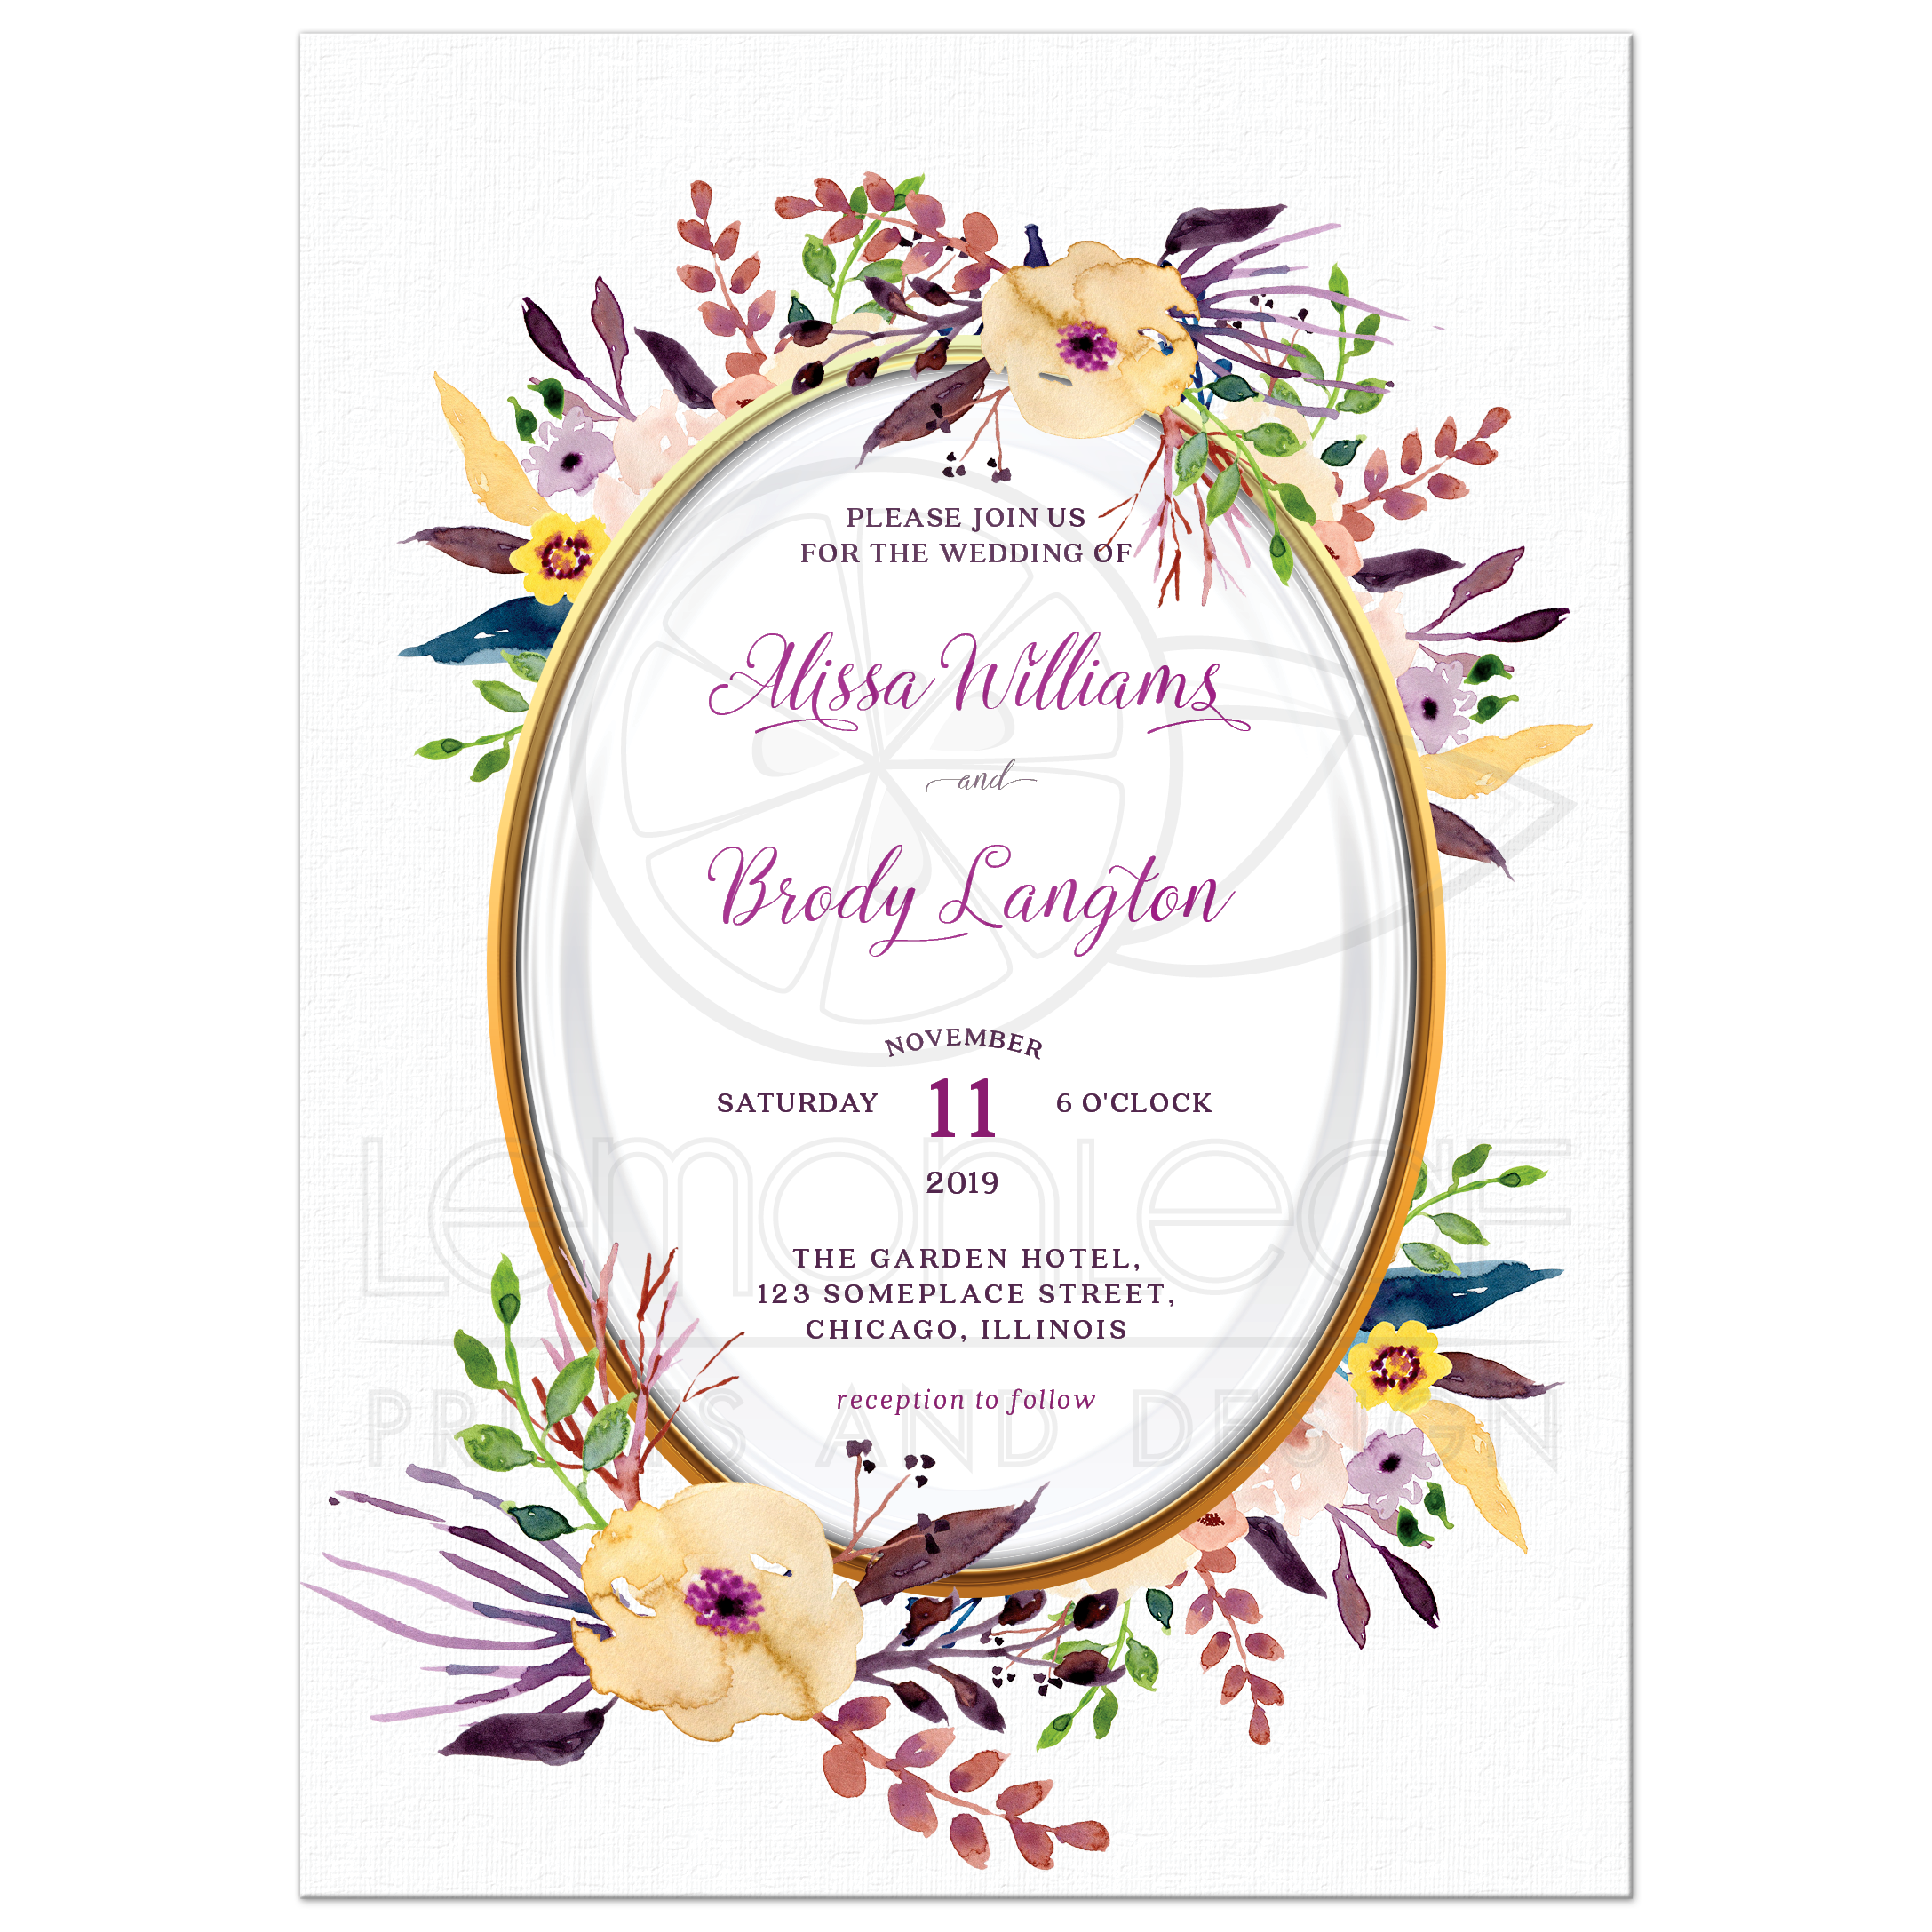 Purple And Gold Weding Invitations 01 - Purple And Gold Weding Invitations